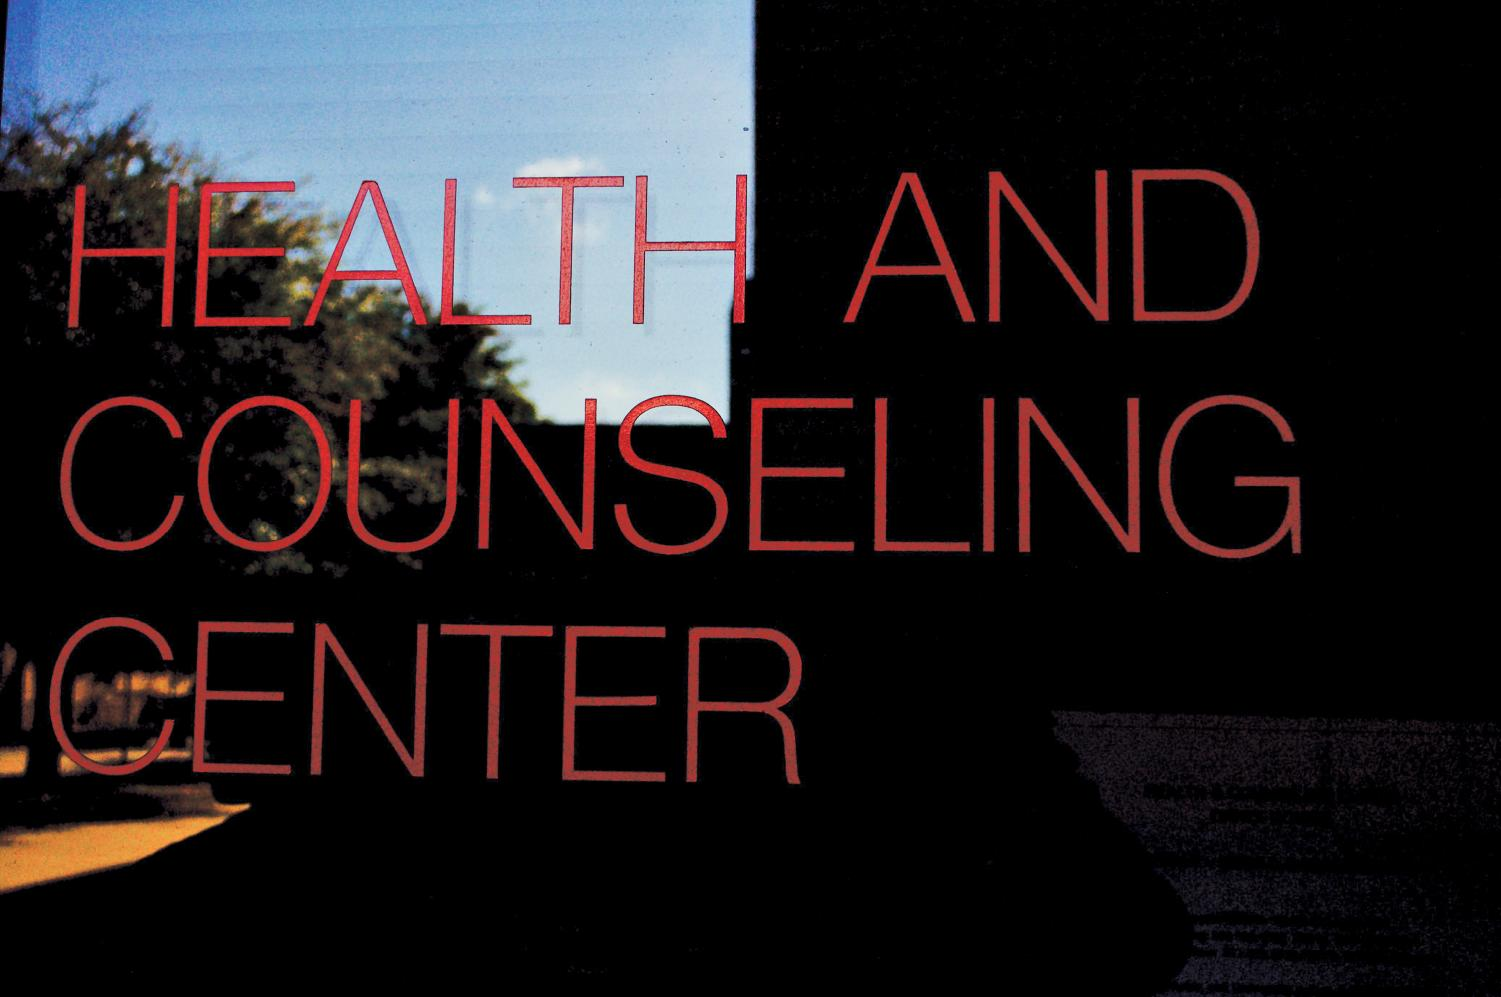 The Health and Counseling Center is located near Johnson Hall. It is not clear whether they offer STD treatment or sexual health information.